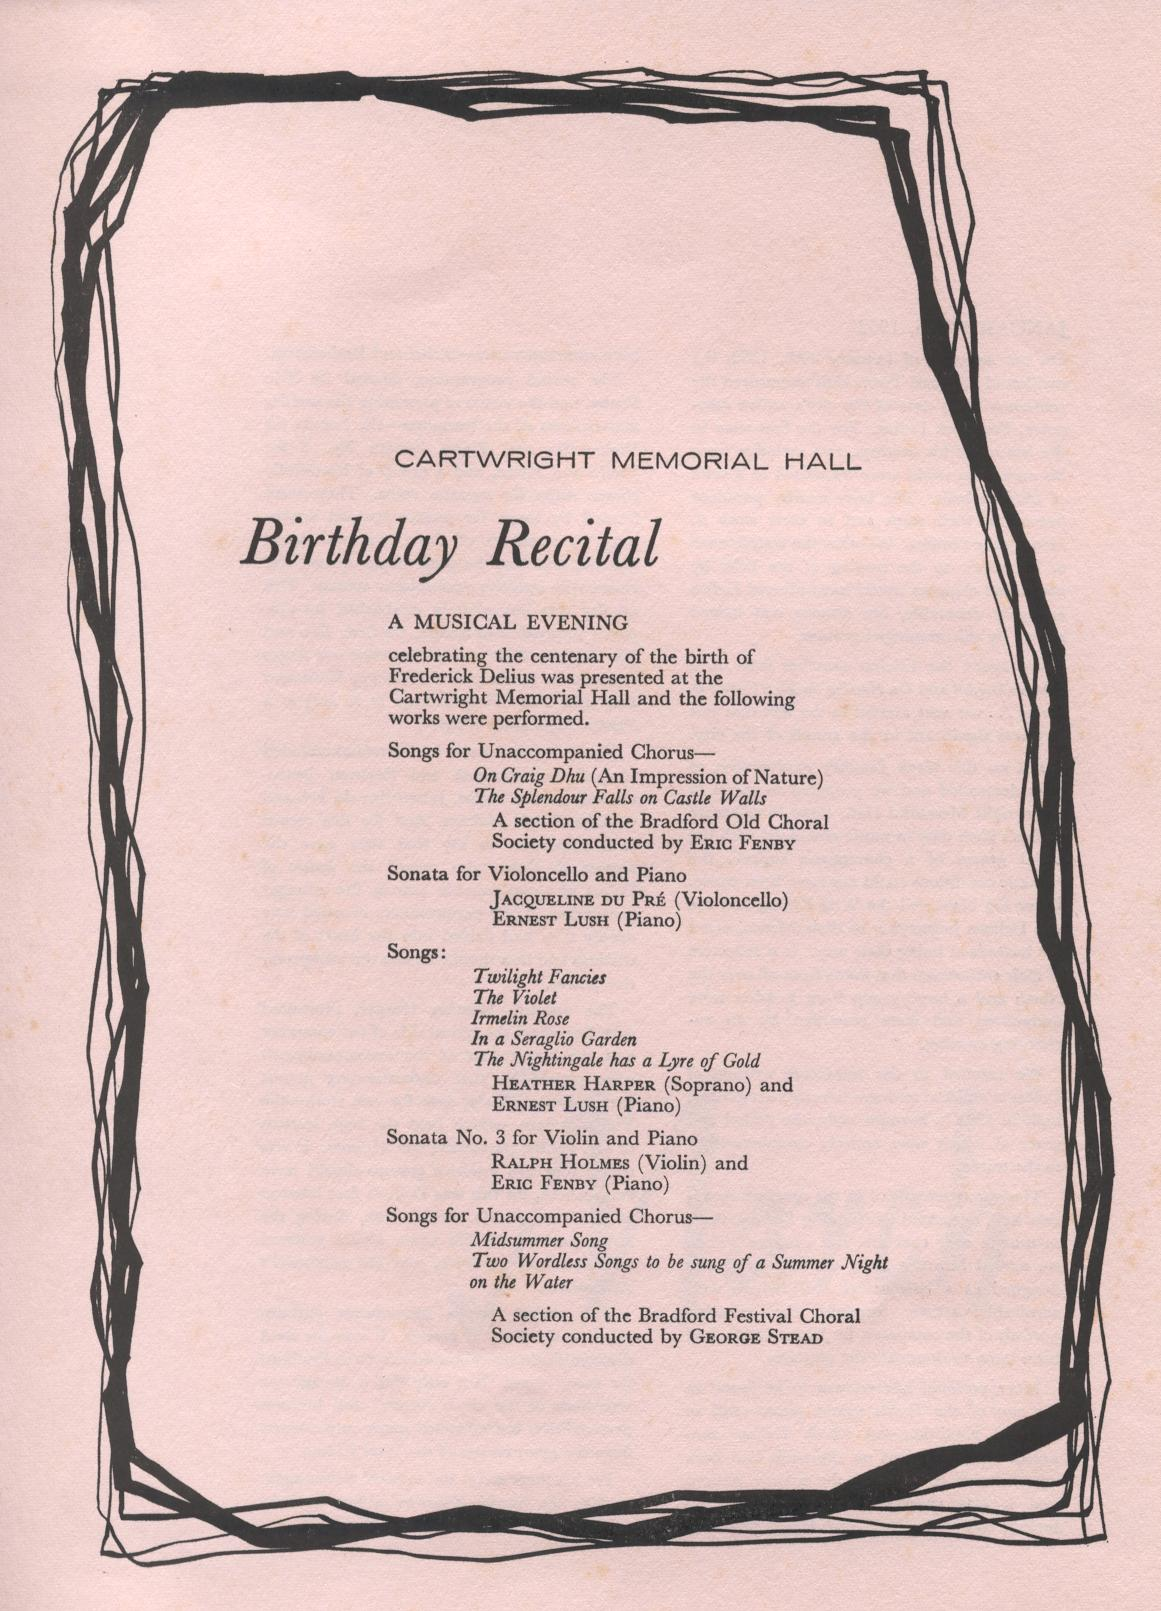 18th Birthday Debut Program Sample http://cwdlj.in/program-sample-for-18th-birthday.html